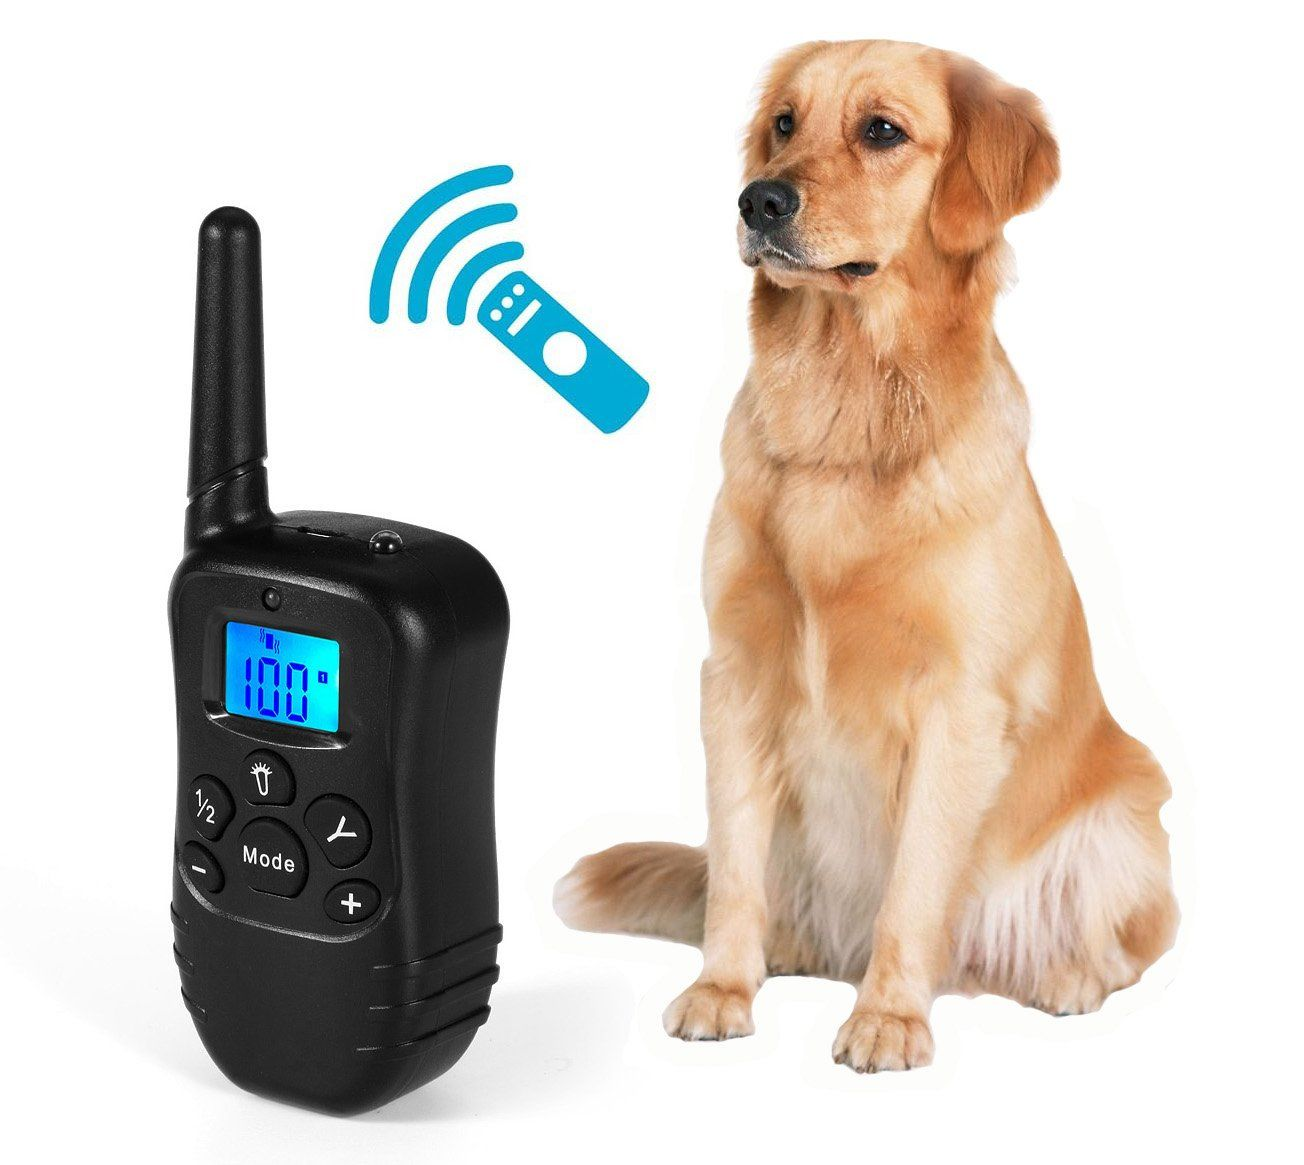 Ouzen Remote Dog Training Collar Rechargeable Waterproof